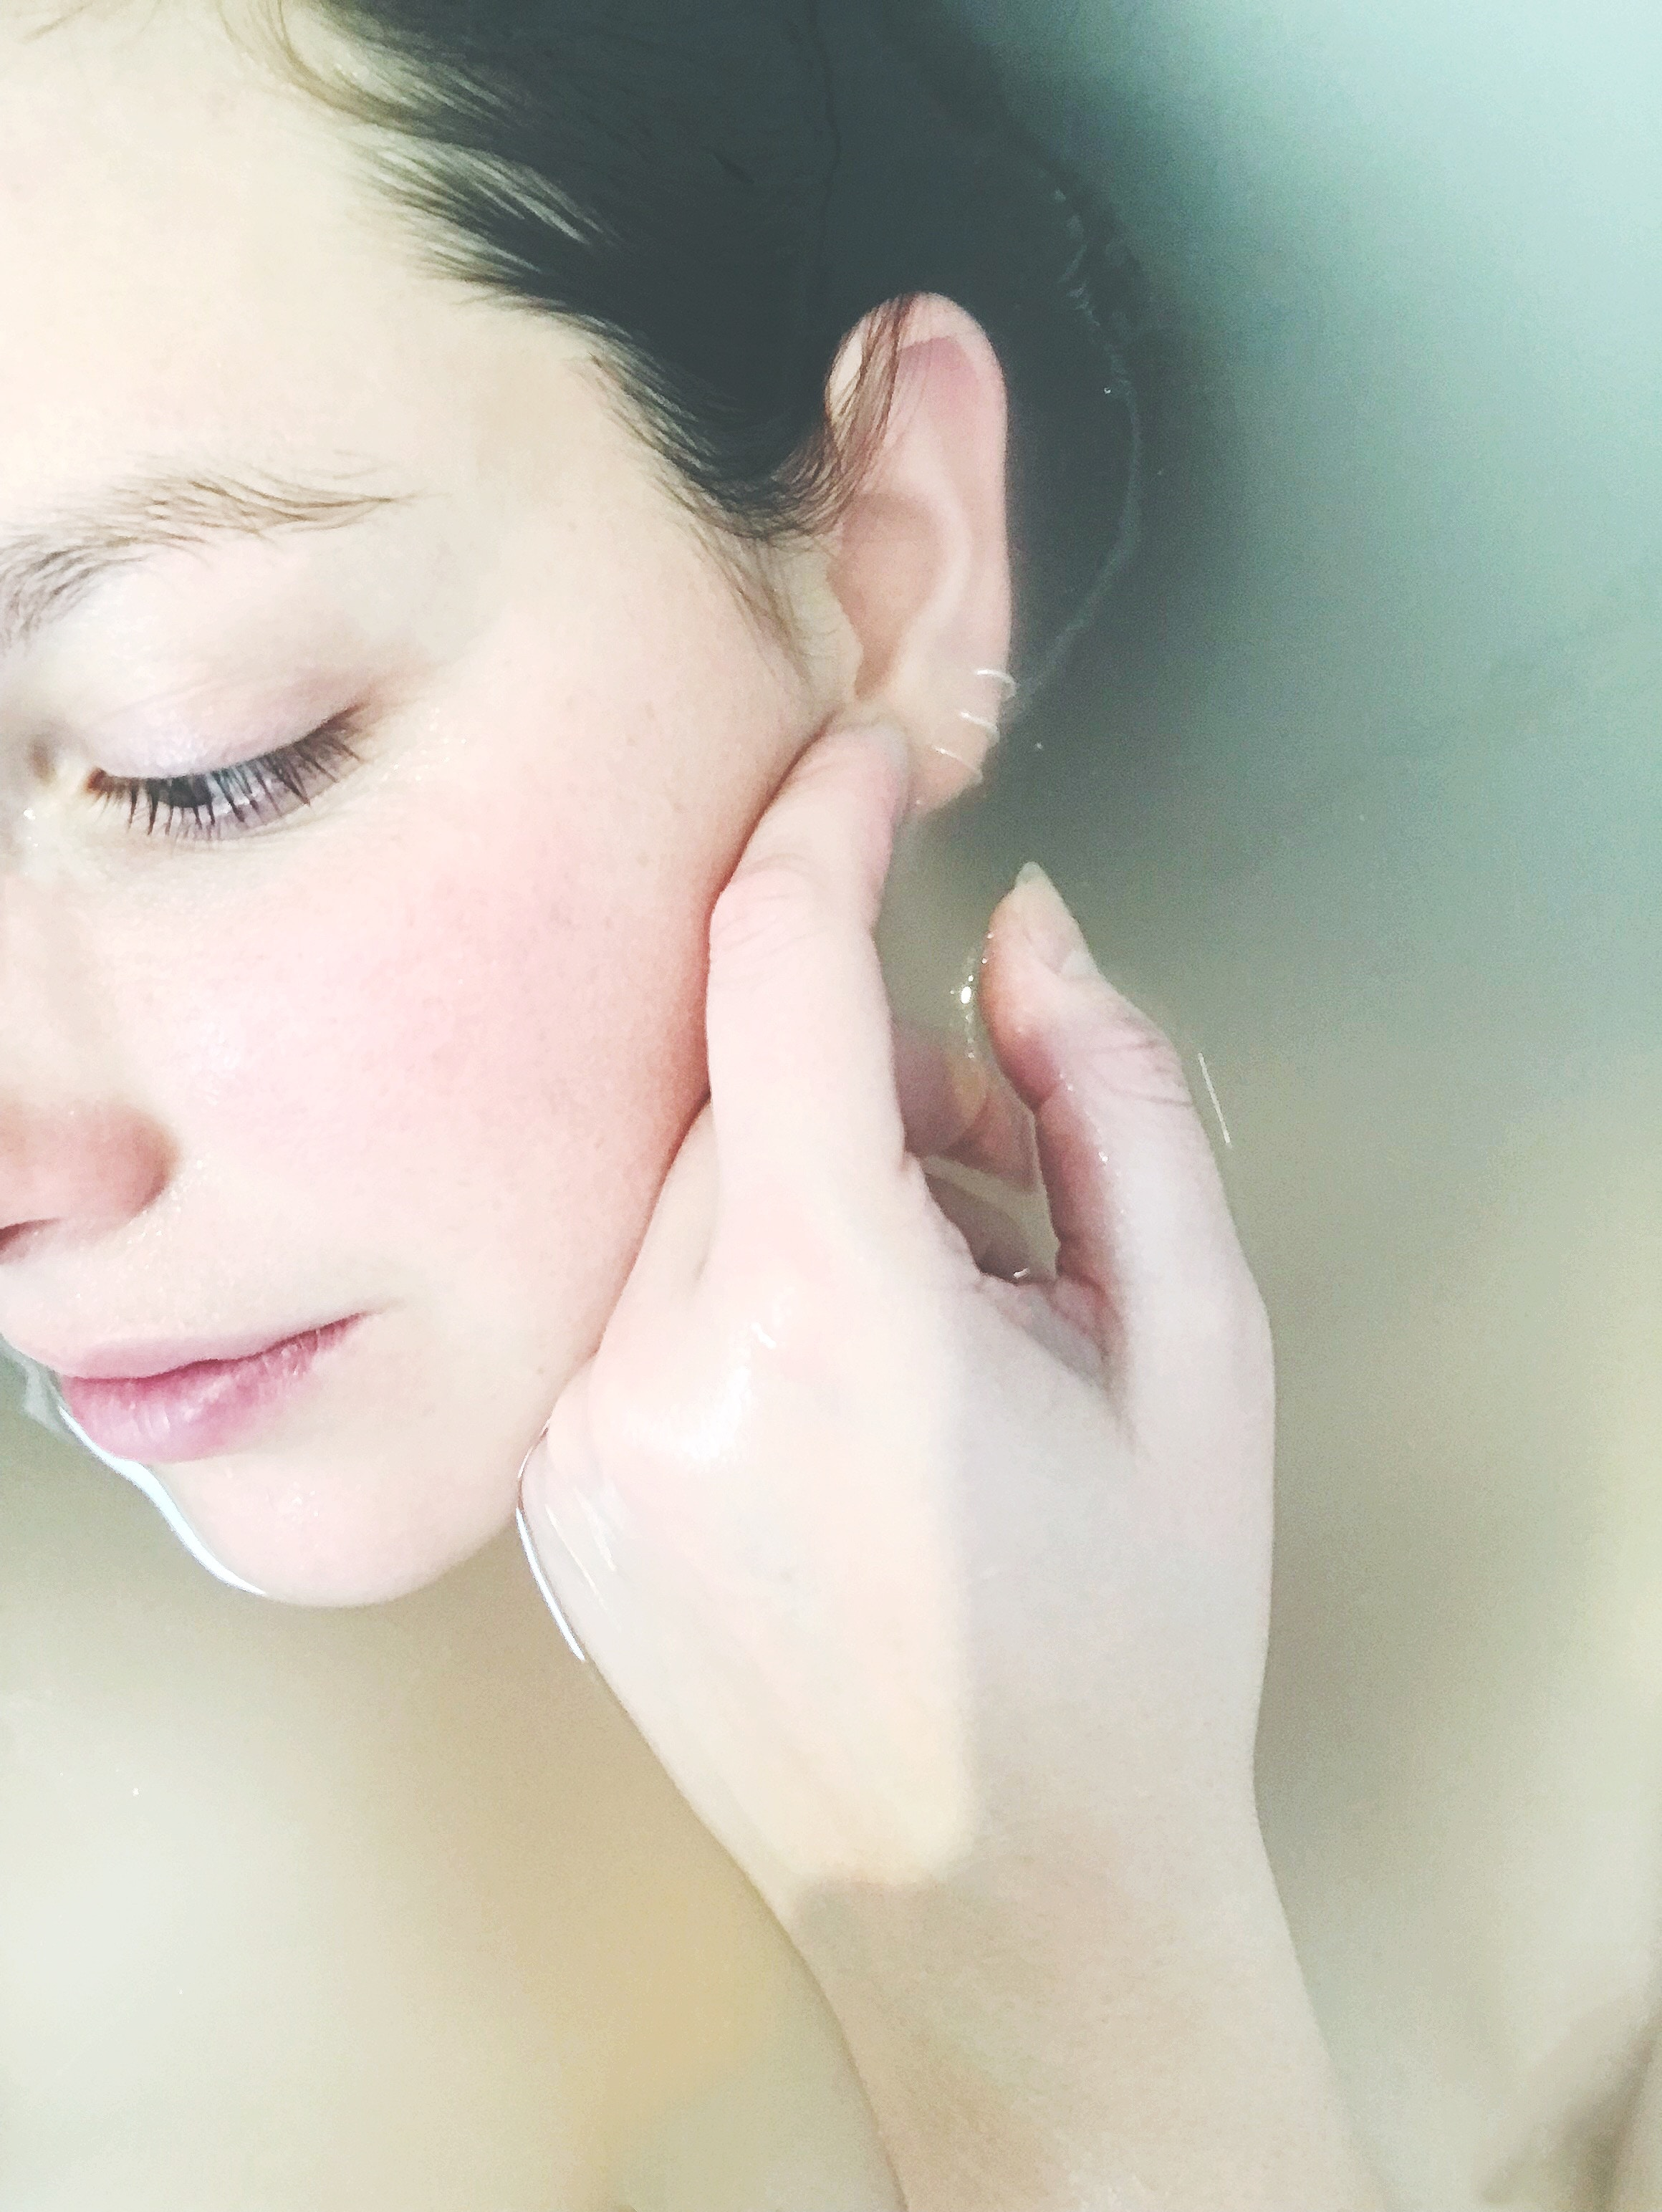 Is Hydrating the Skin the Same as Moisturizing?